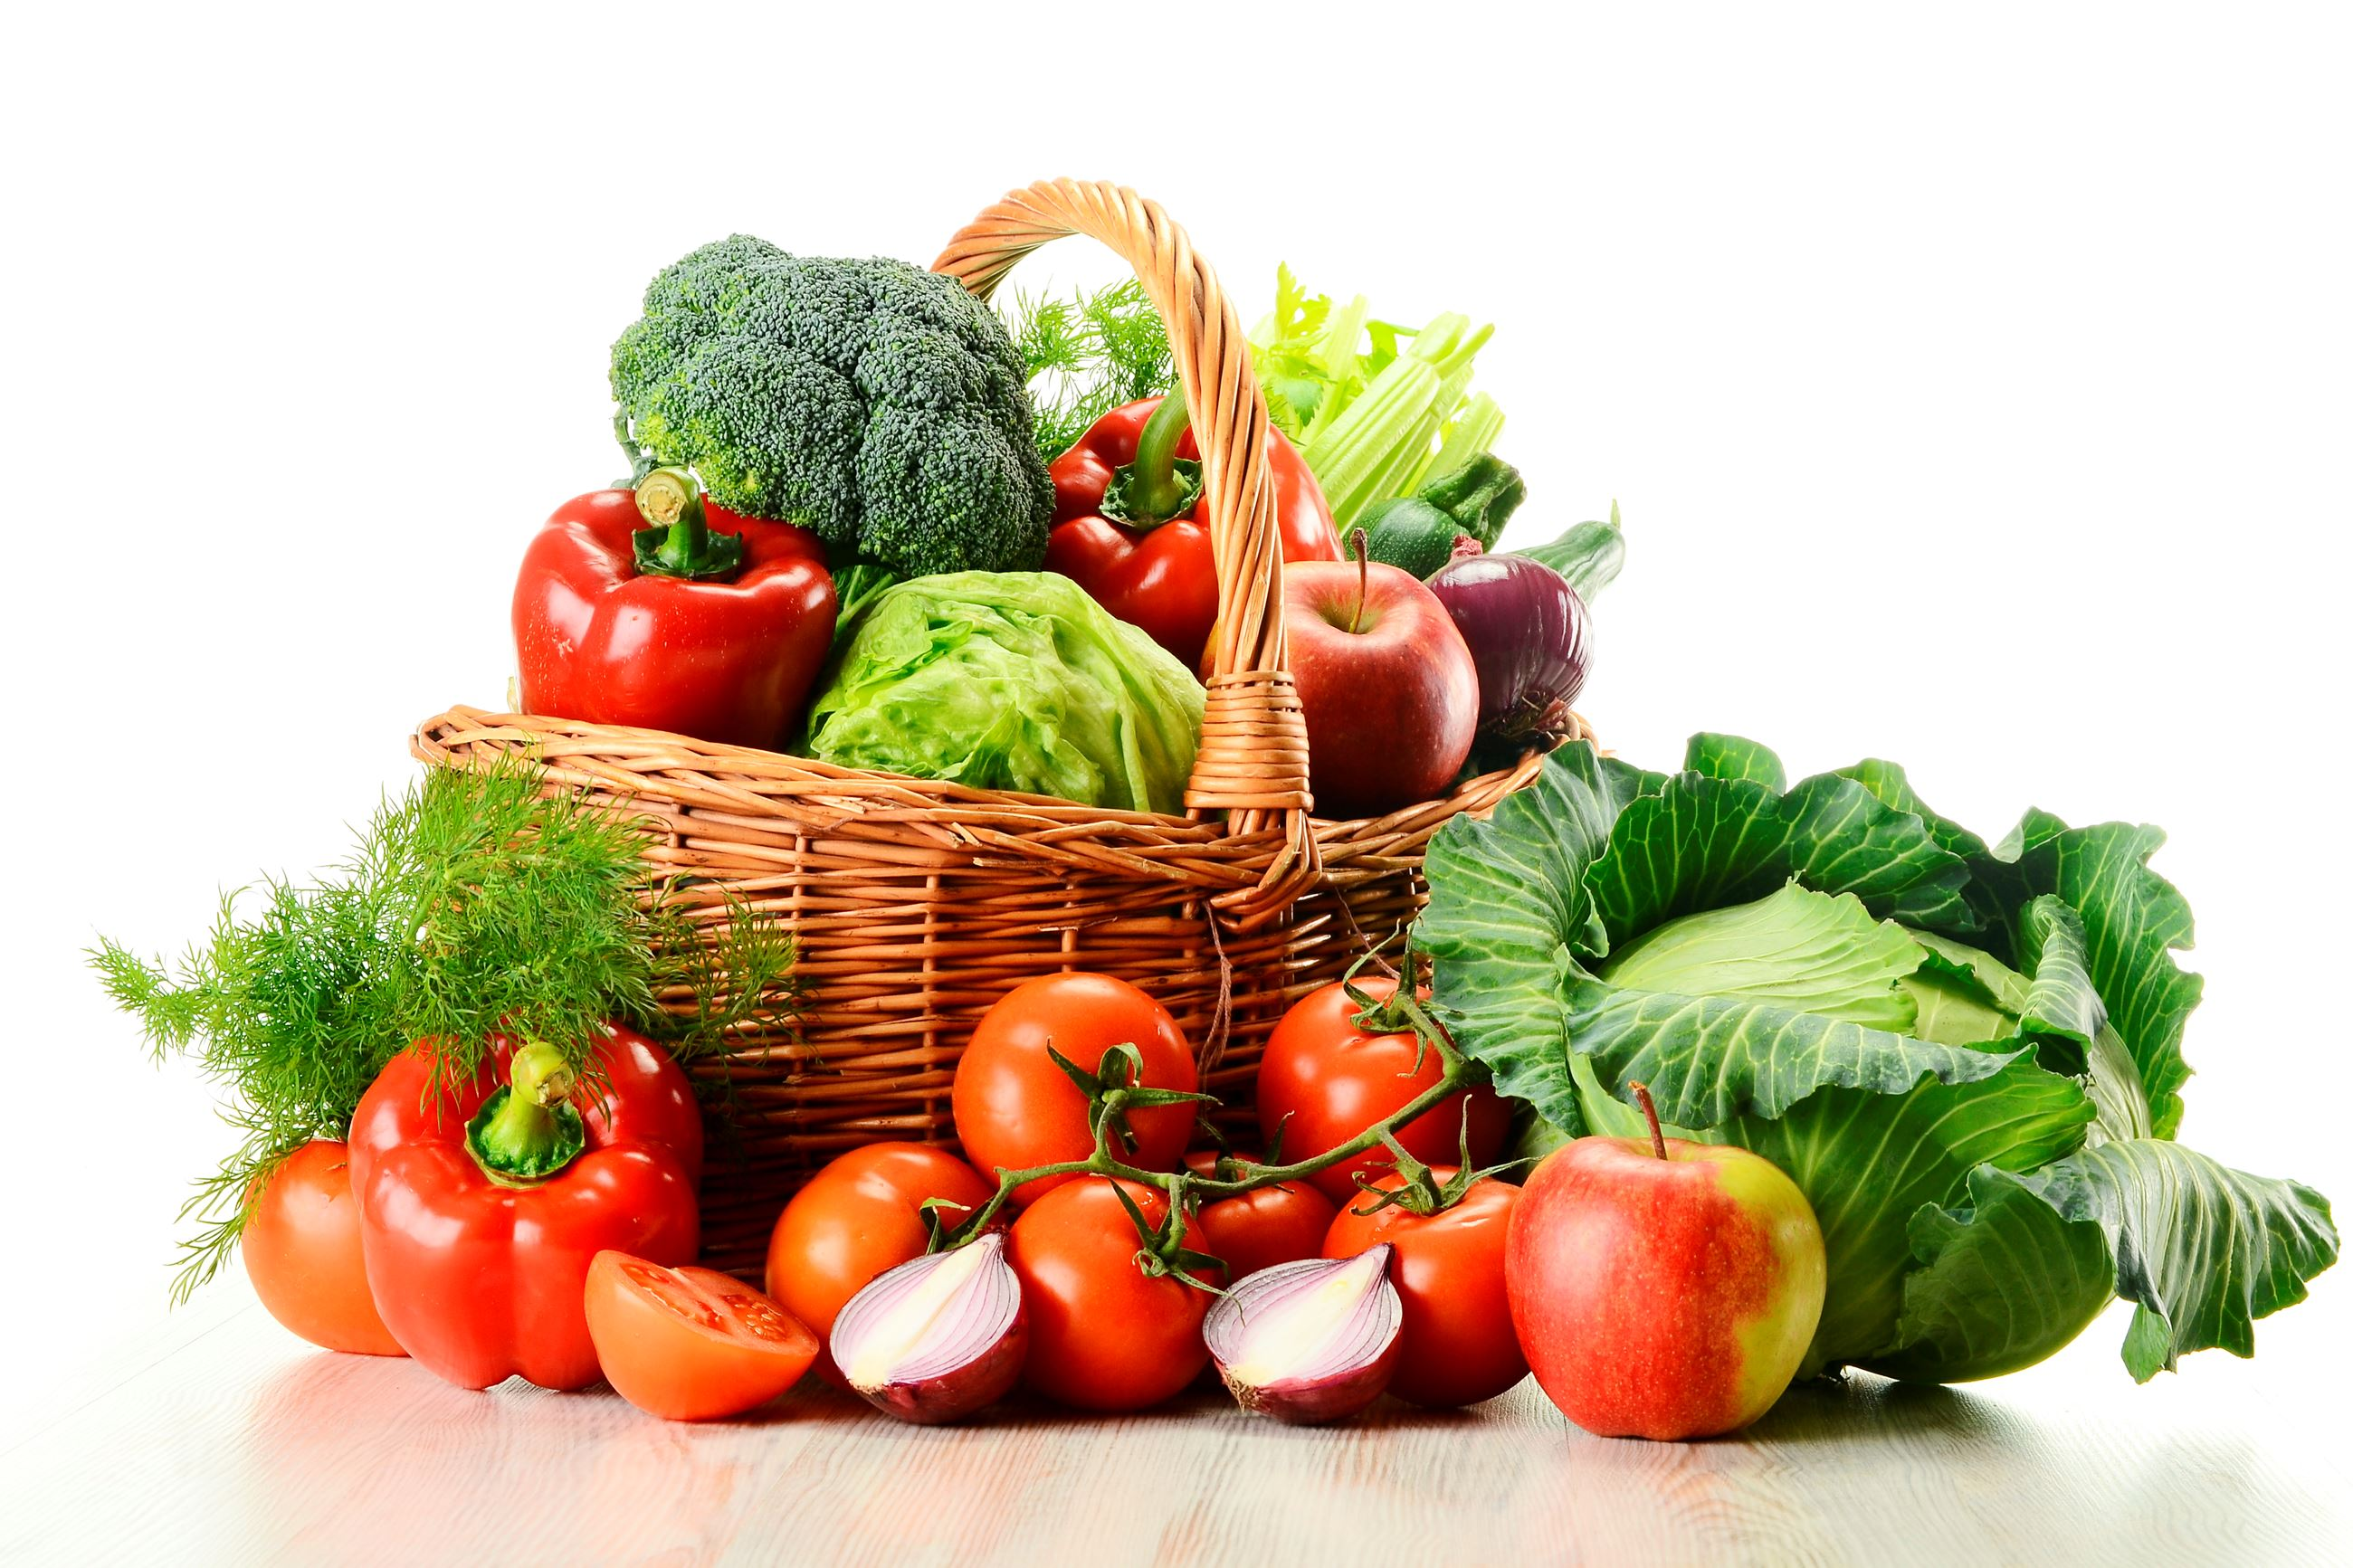 food-fruit and veggies